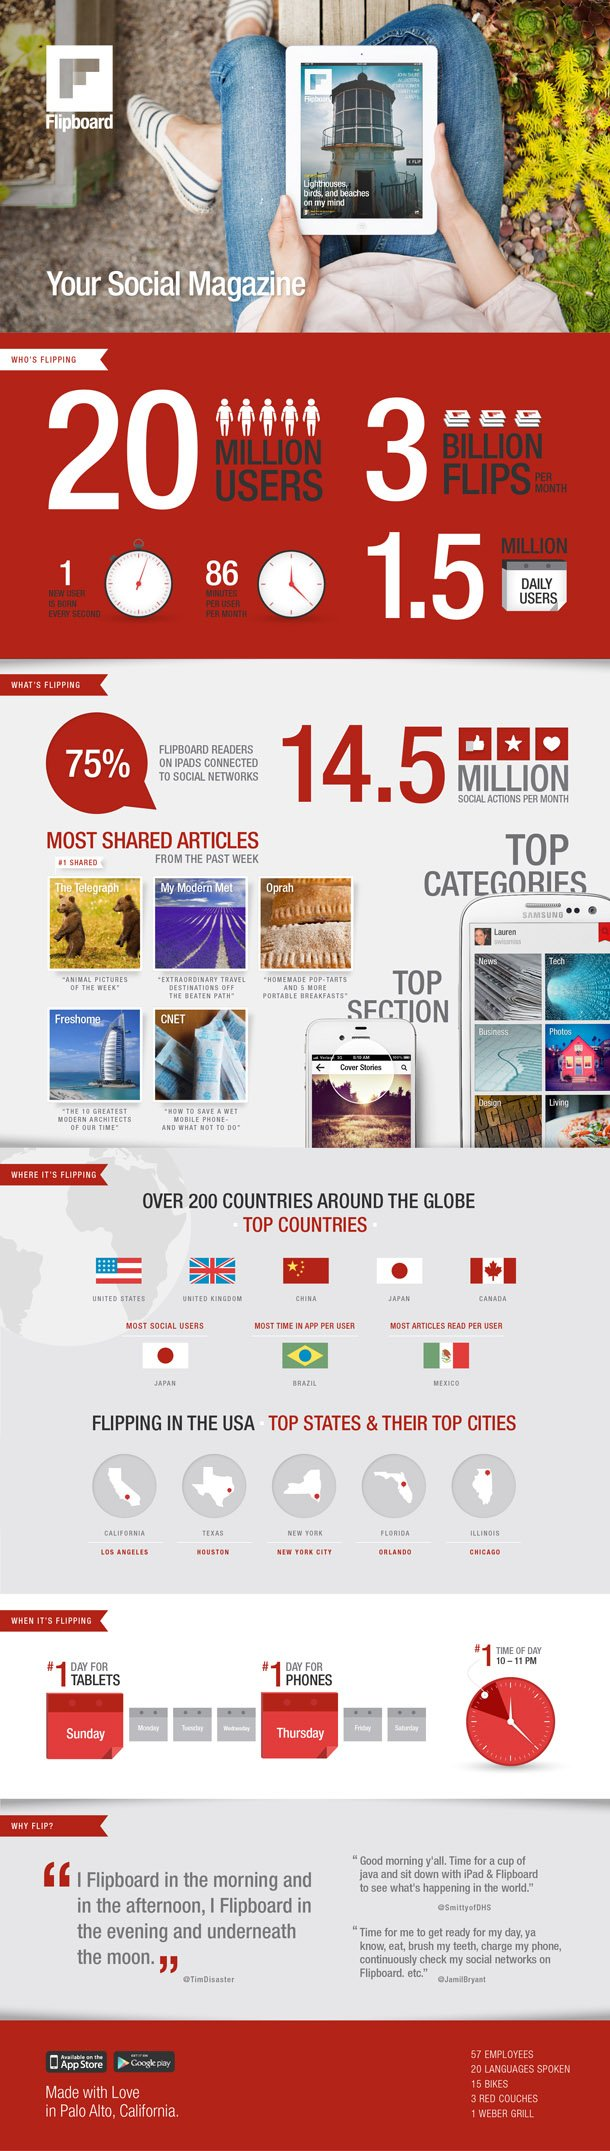 Flipboard surpasses 20 million users, releases cool infographic